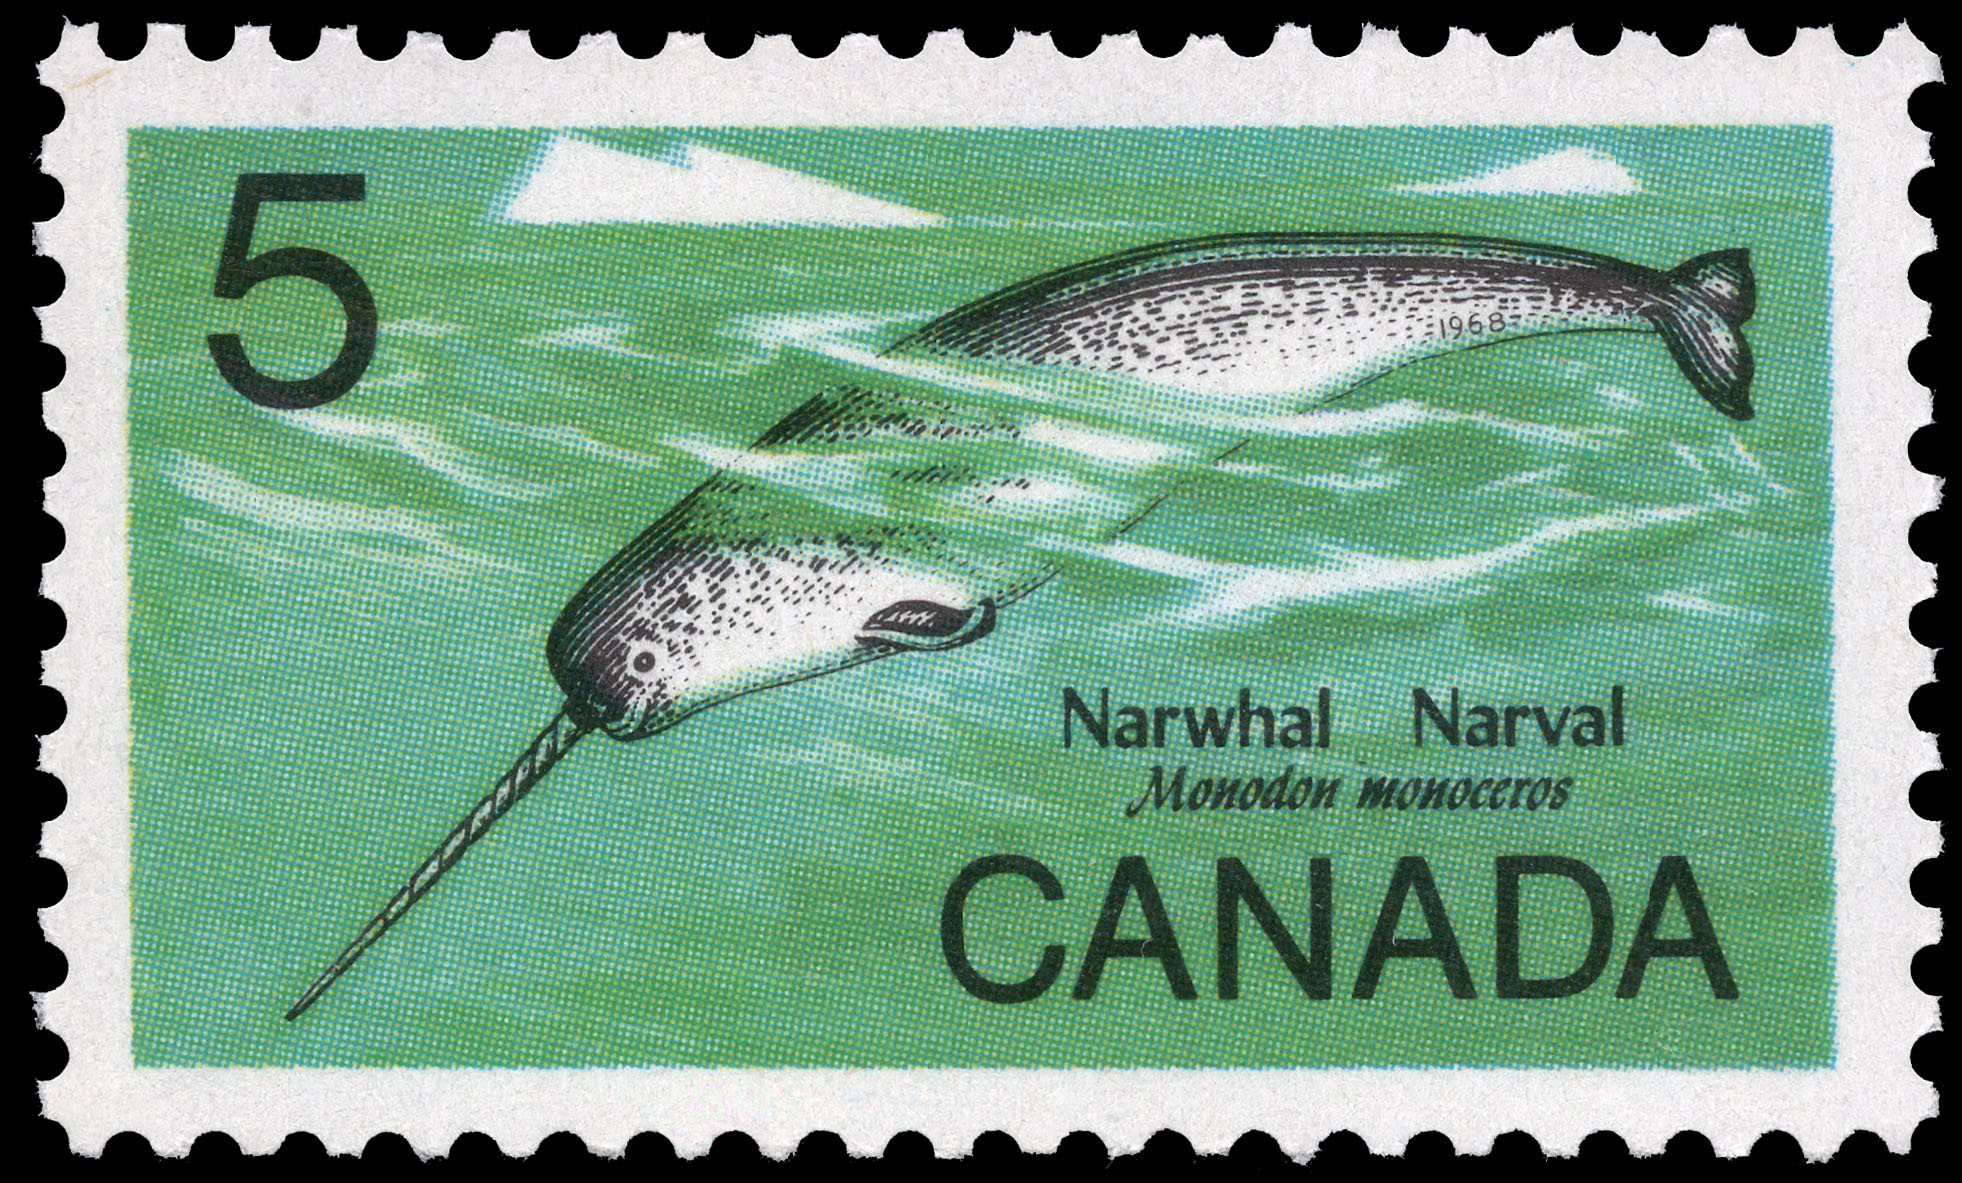 Narwhal, Monodon monoceros Canada Postage Stamp